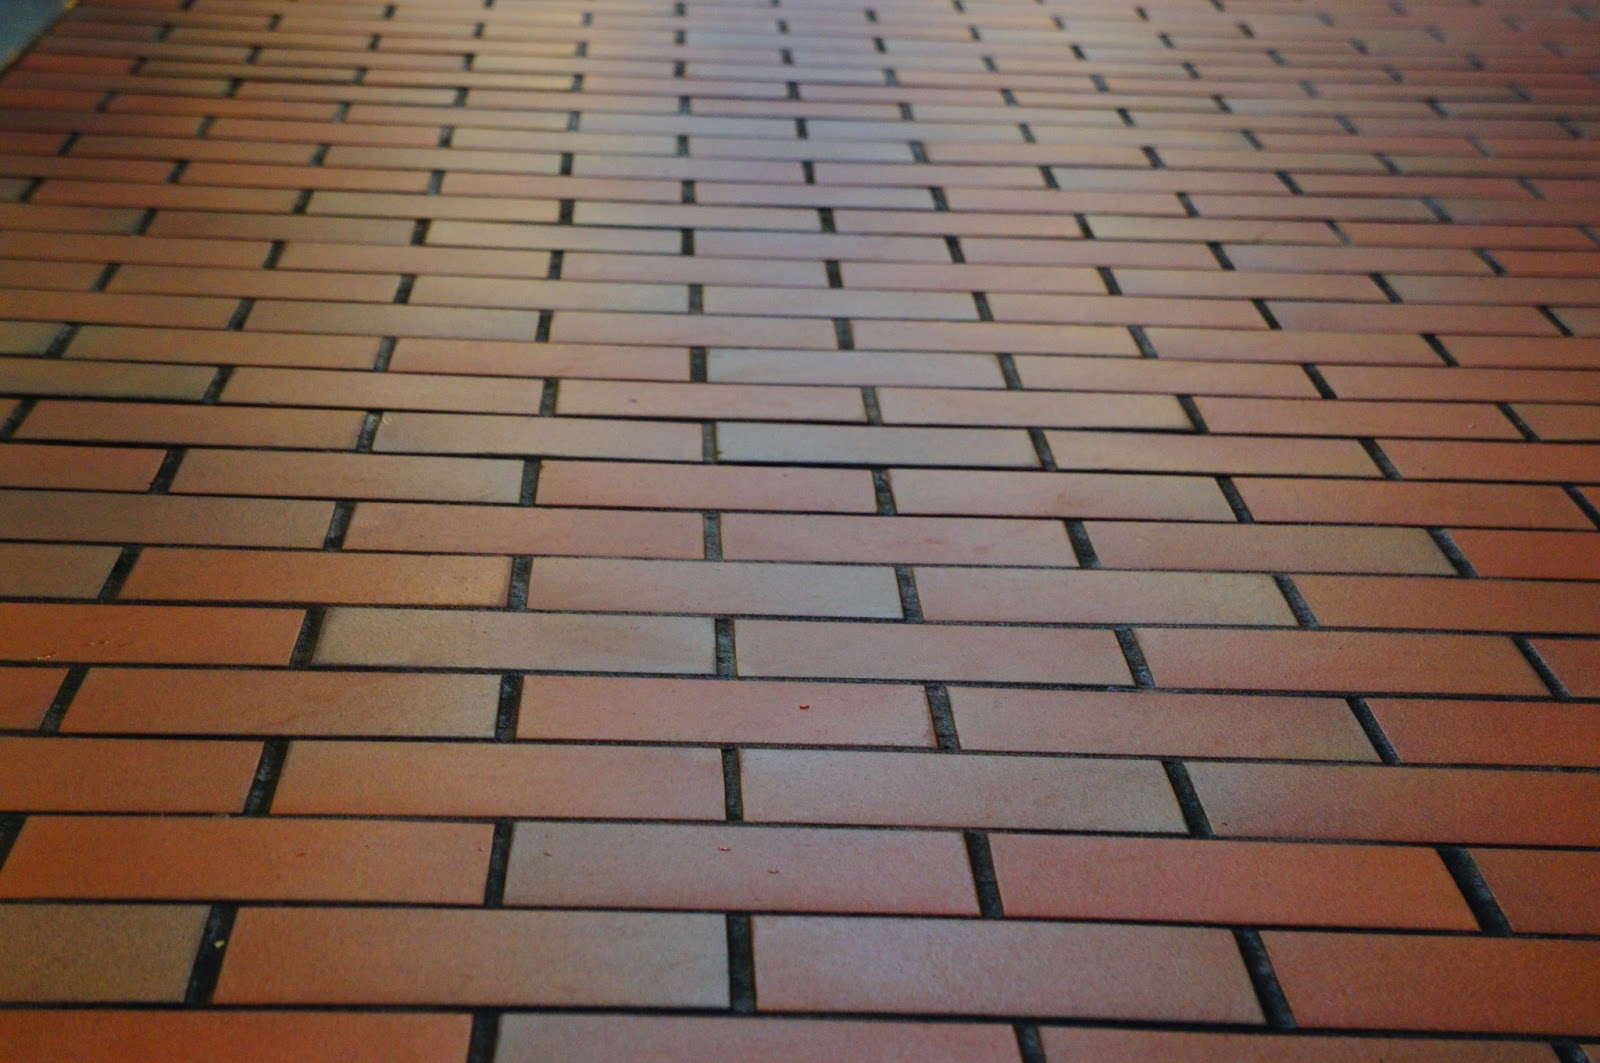 10 Brick Floor Pattern Free Picture My Public Domain